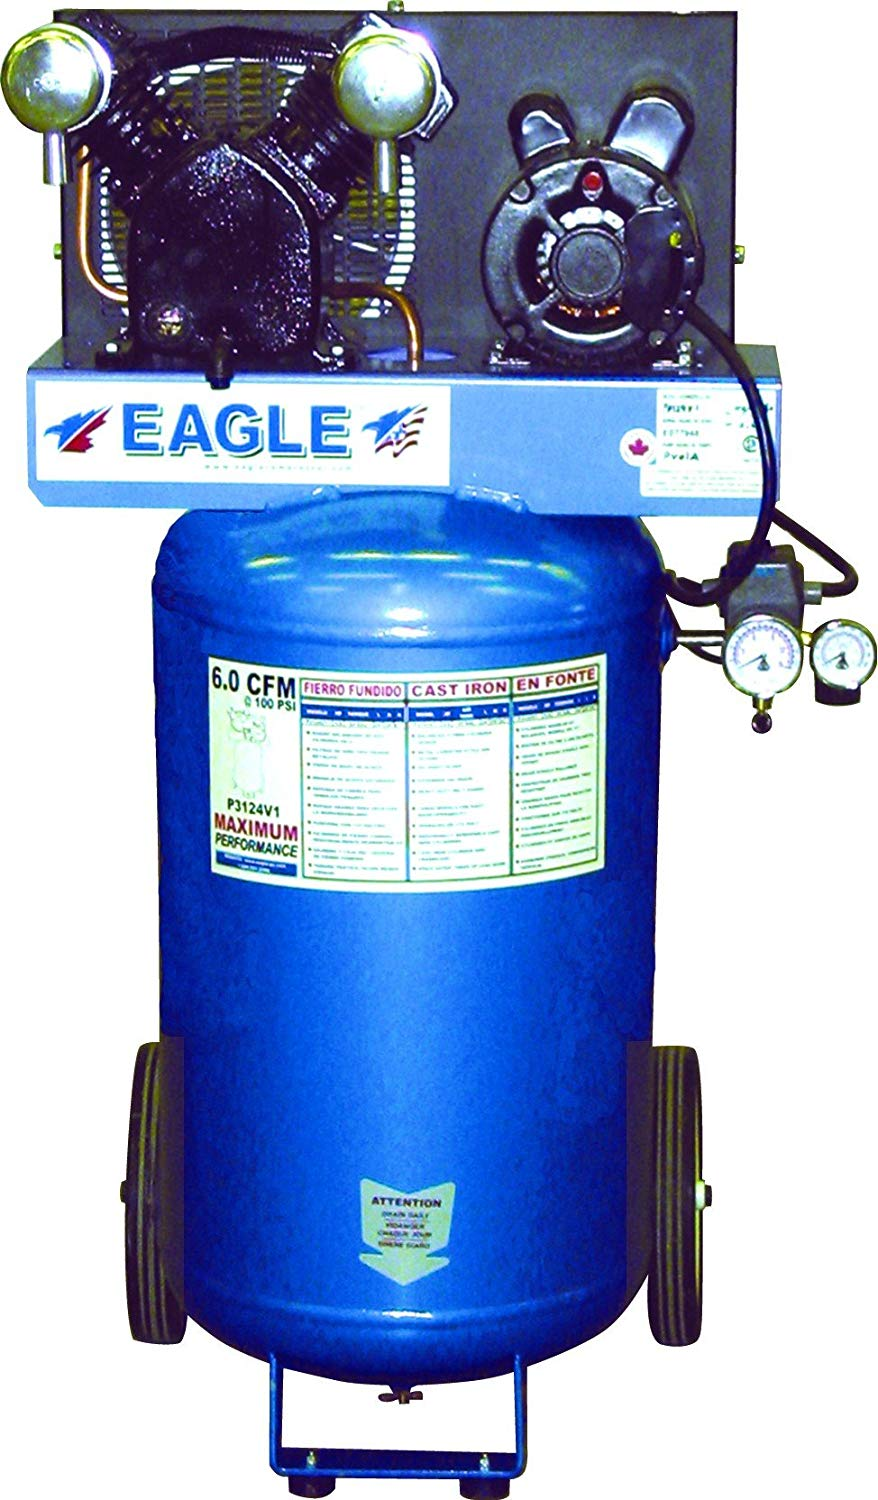 Eagle Portable Vertical Electric Air Compressor - 3 HP - 24 Gallon Tank Facility Equipment - Cleanflow